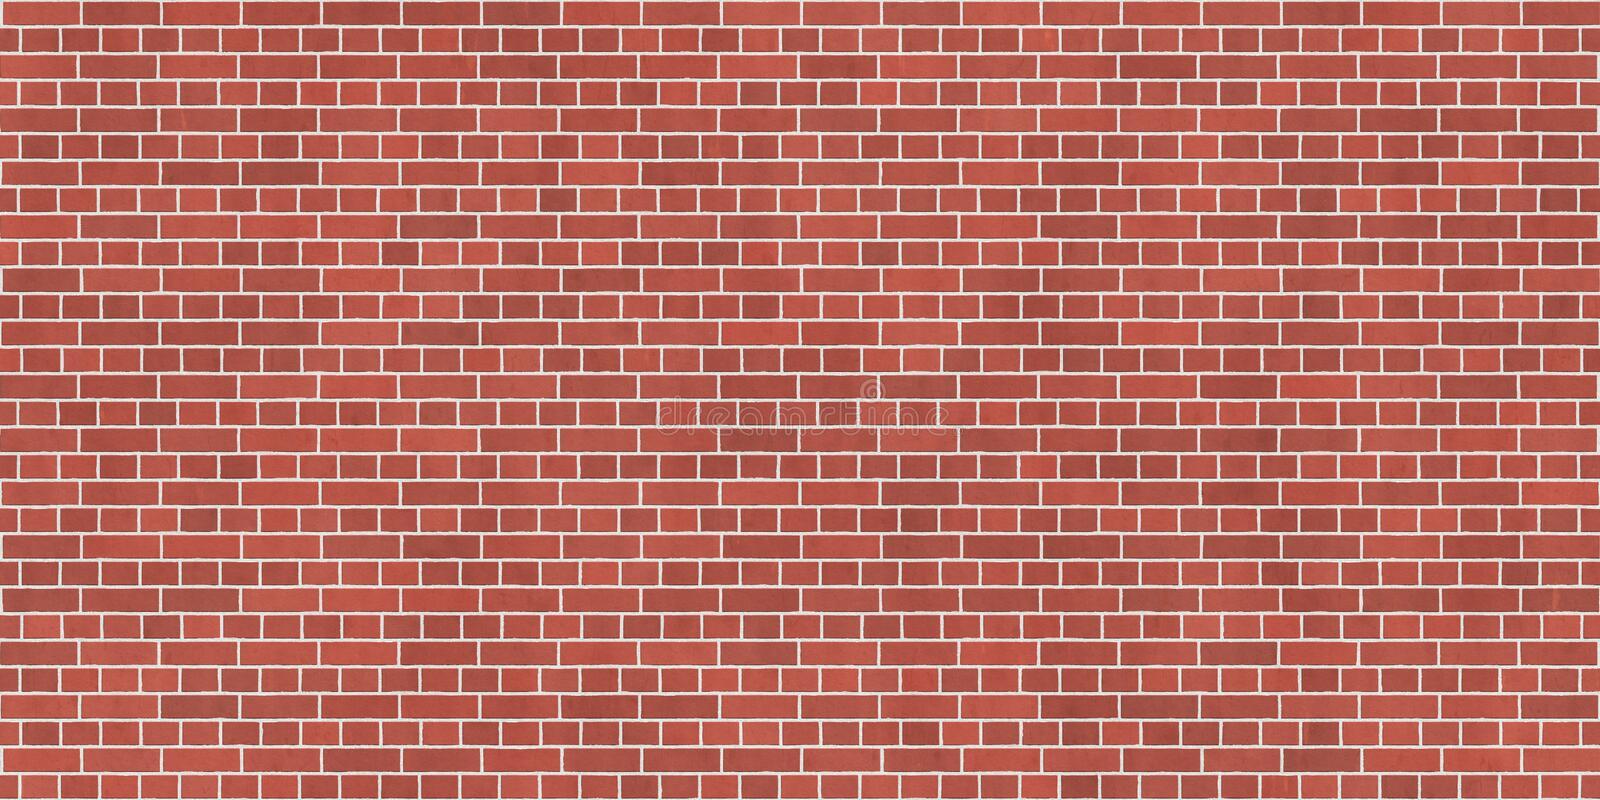 Background texture with red brick wall vector illustration